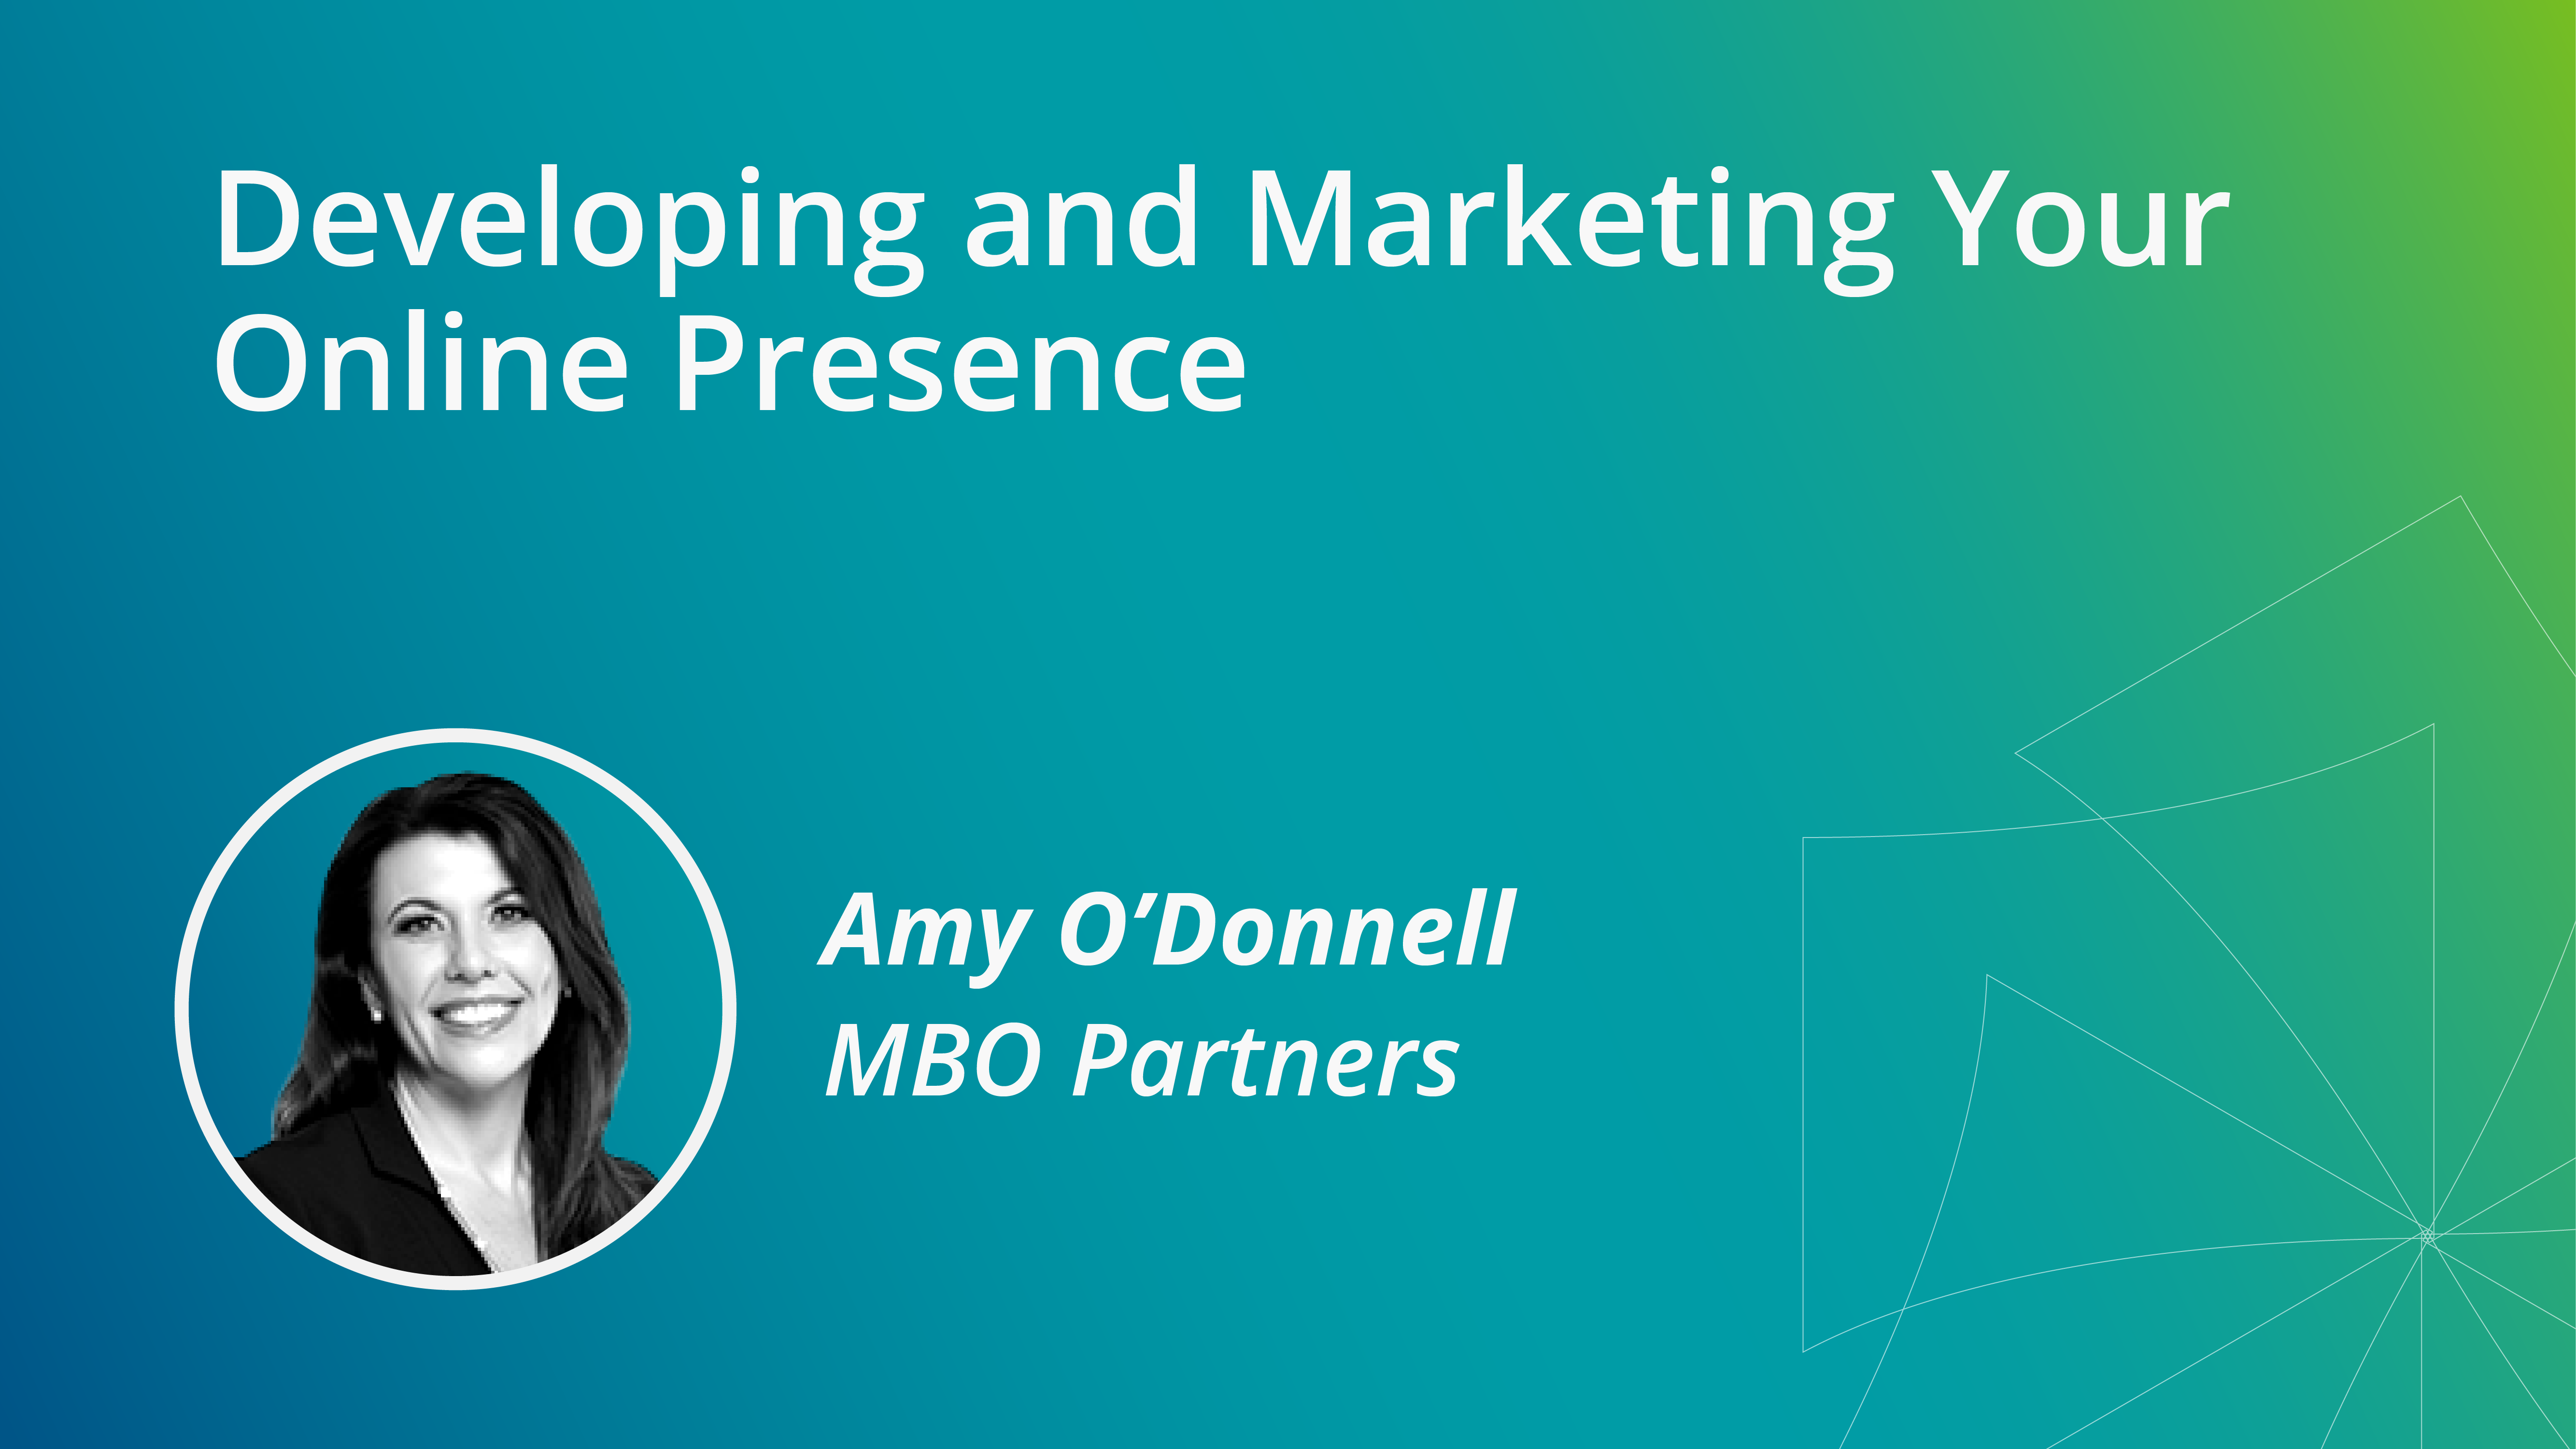 Developing and Marketing Your Online Presence as an Independent Consultant